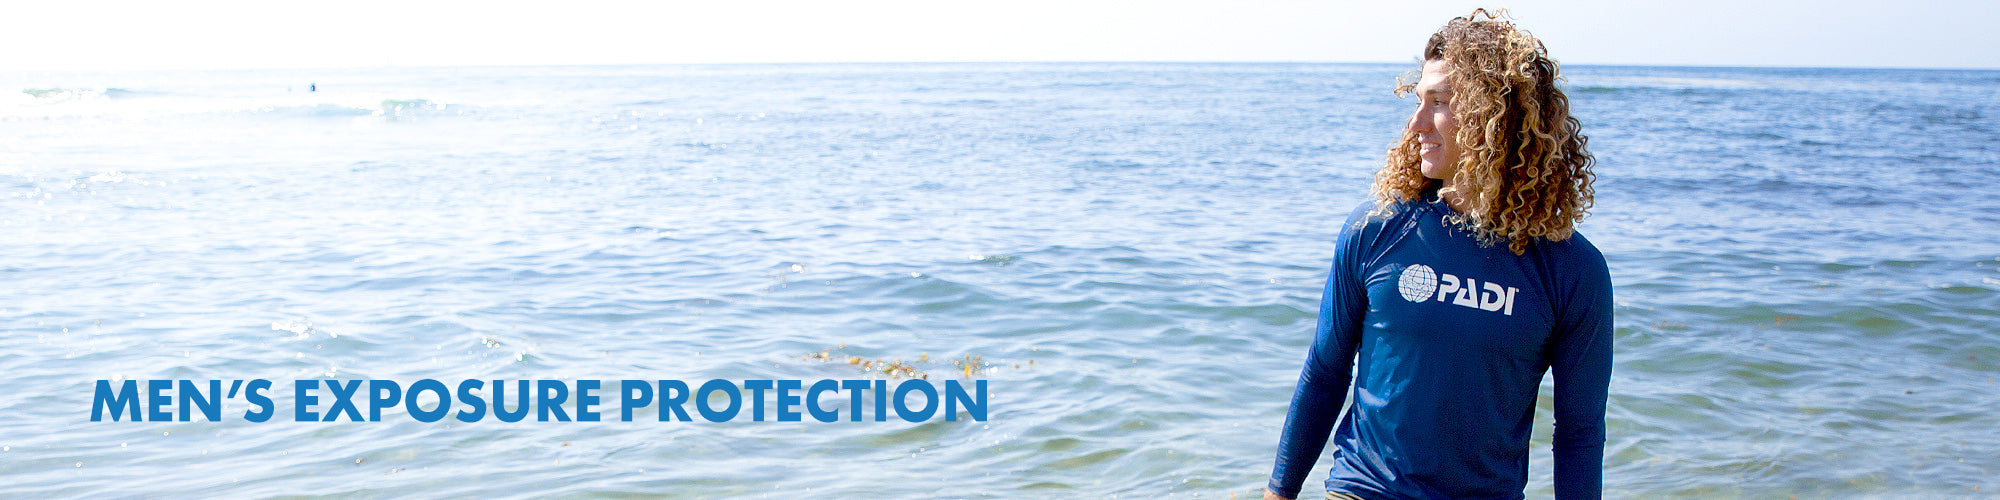 Men's exposure protection collection page.